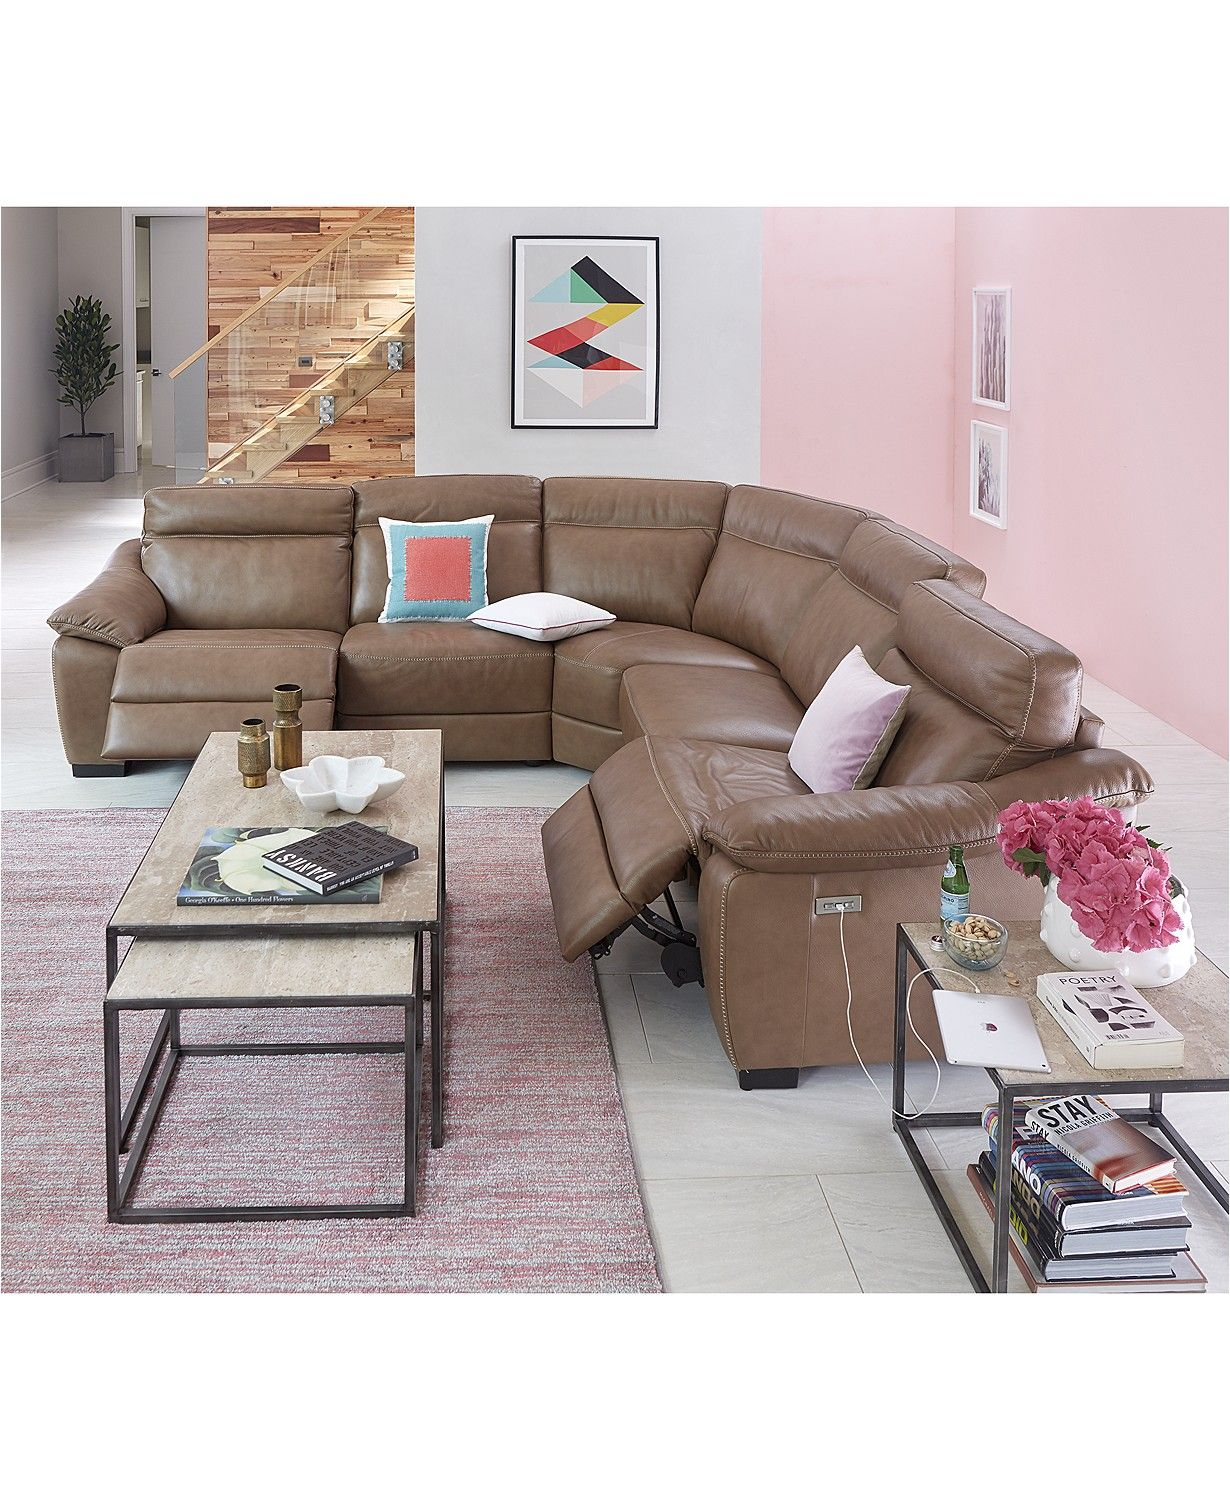 Gennaro Leather Power Reclining Sectional Sofa Collection With Power Headrest Created Reclining Sectional Sectional Sofa With Recliner Leather Sectional Sofas